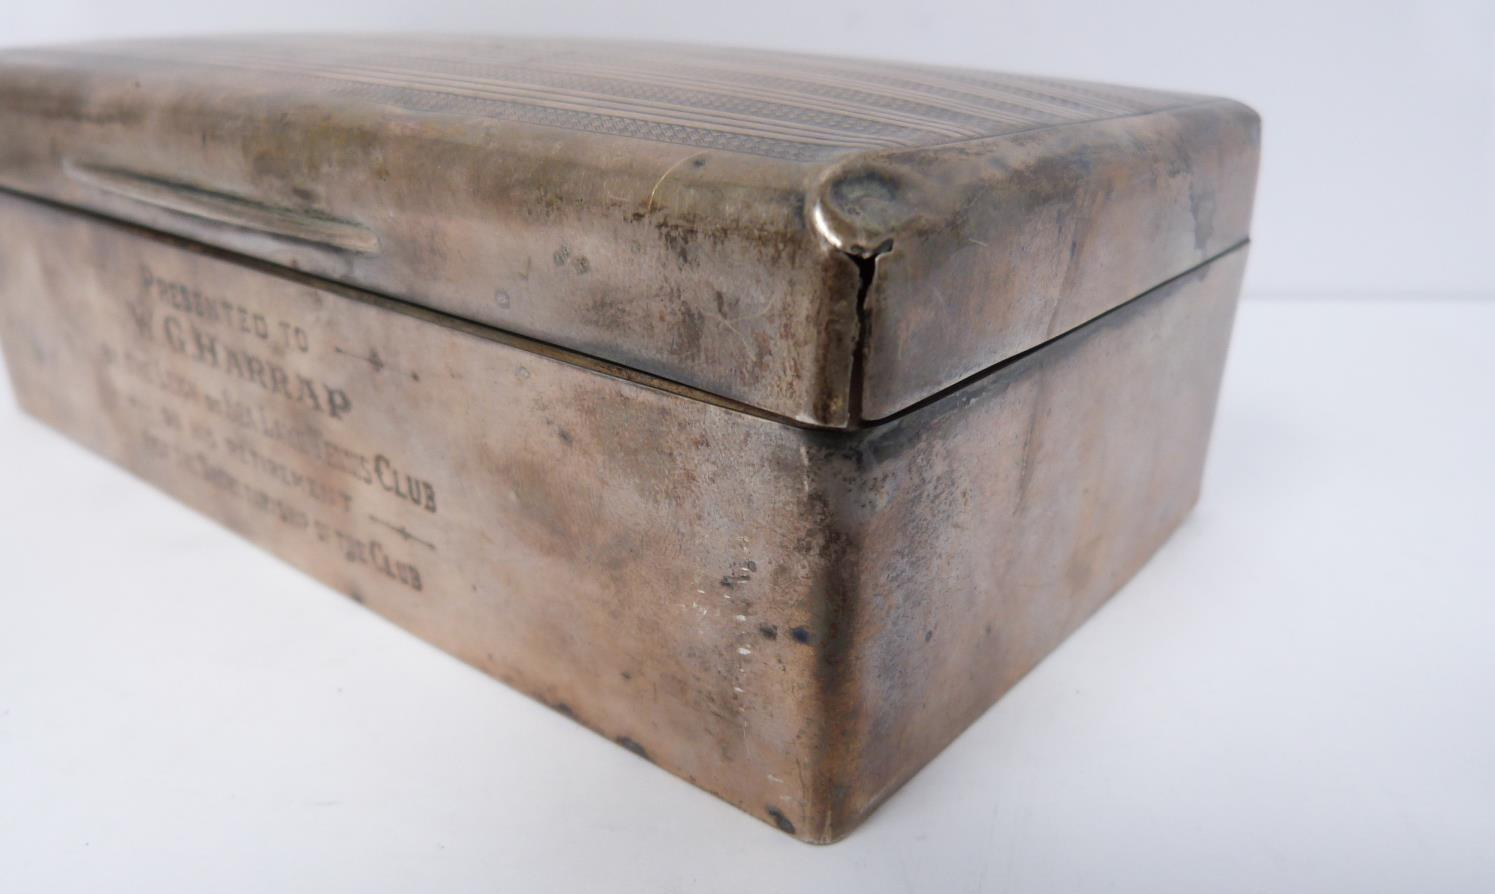 Two silver cigarette cases and a silver cigarette box, rectangular engine turned decoration case, - Image 7 of 14